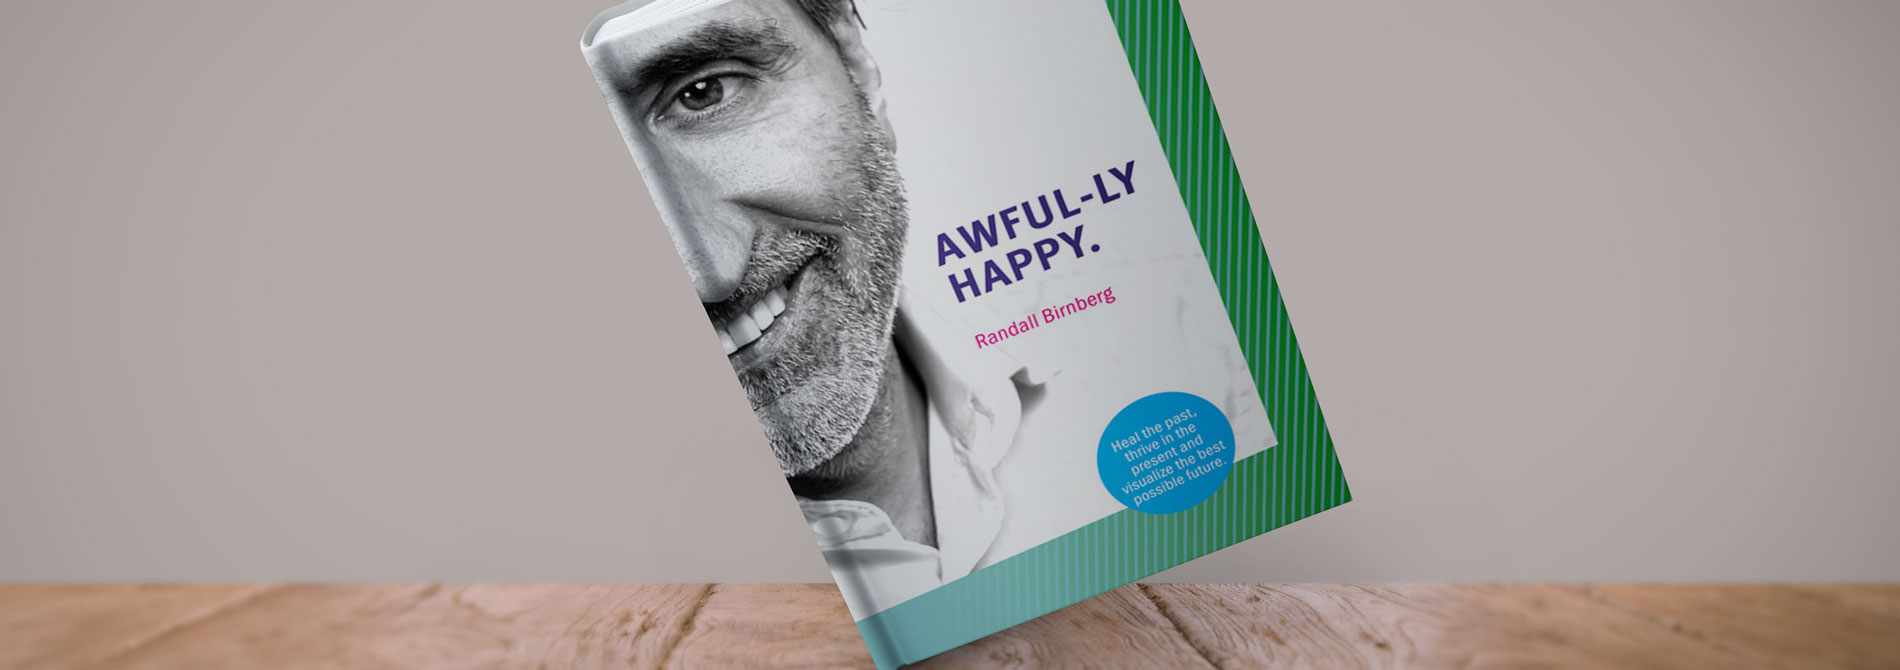 image book awful-ly happy